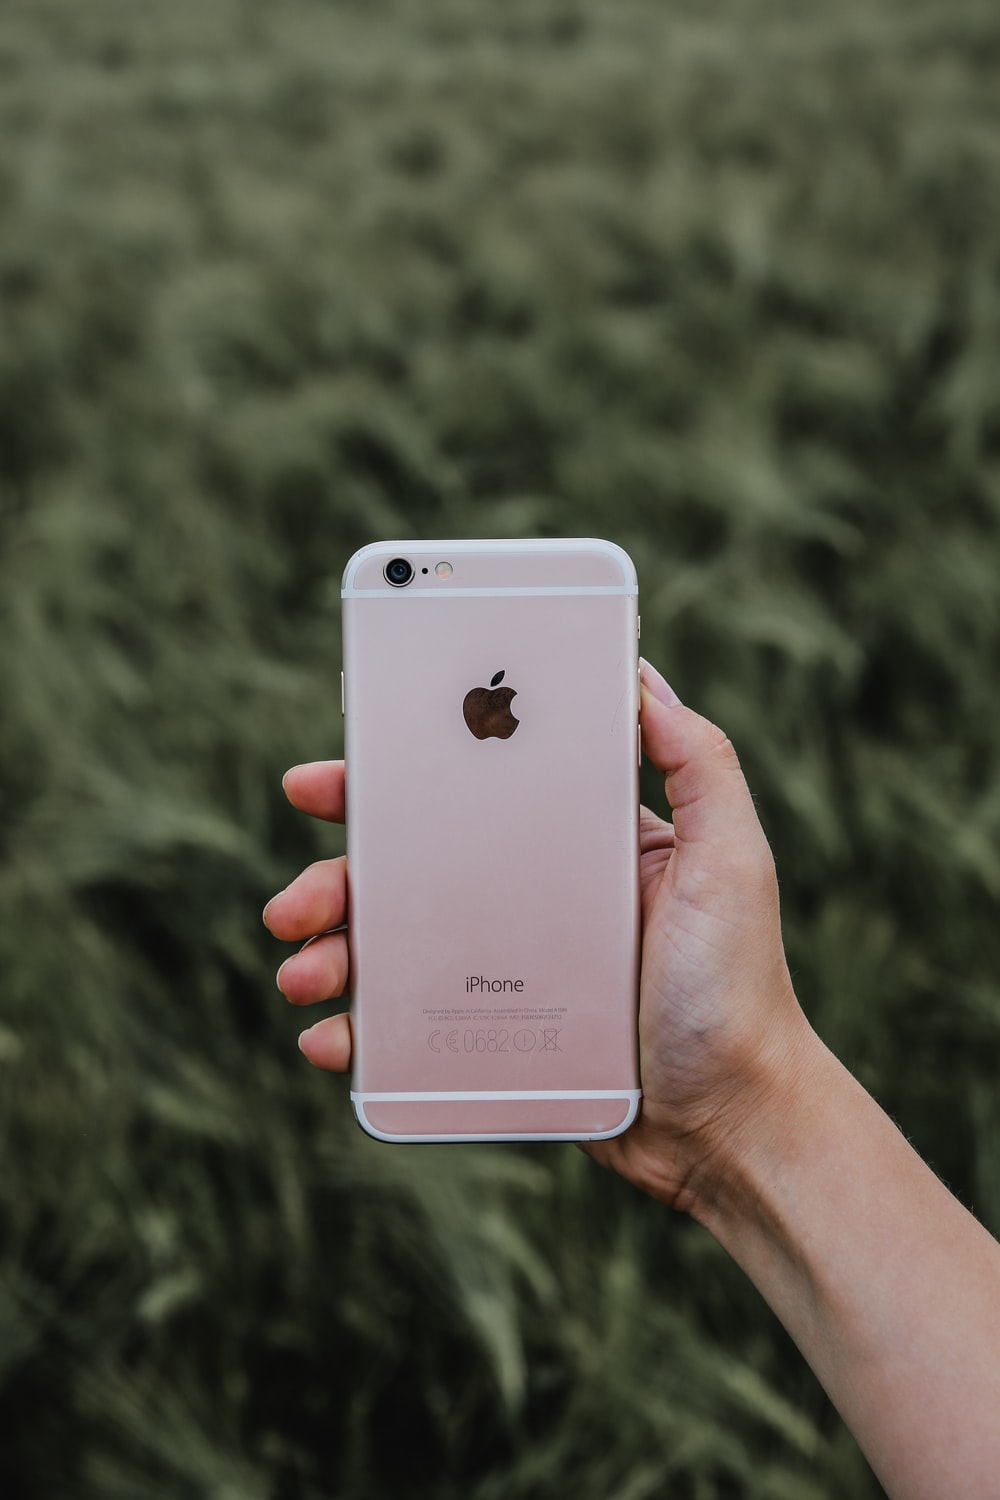 Iphone 7 Pictures Hd Download Free Images On Unsplash